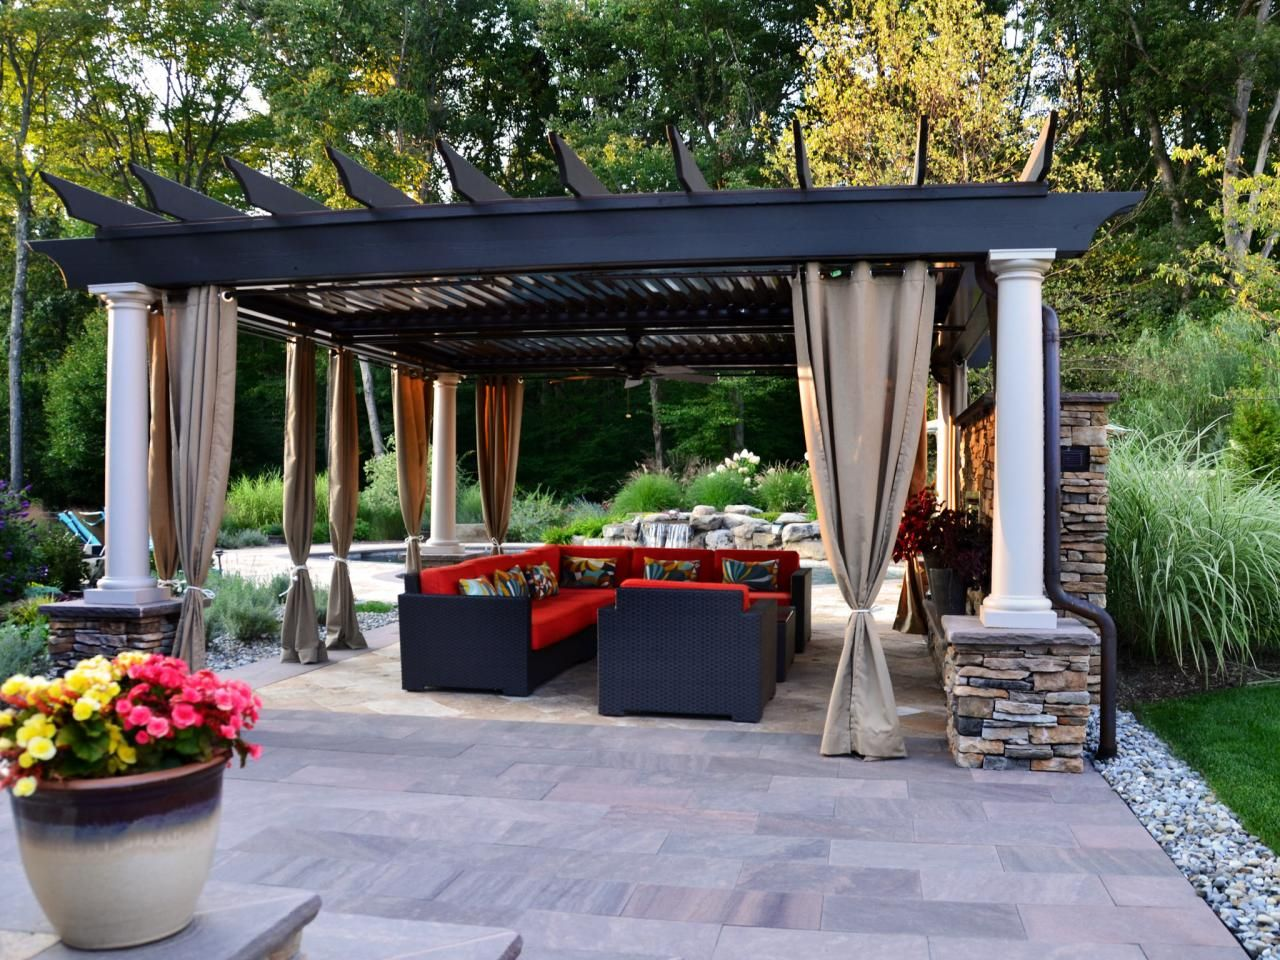 17 Engrossing Ideas To Make Your Yard More Enjoyable With Pergola With Curtains Outdoor Pergola Backyard Pergola Pergola Patio